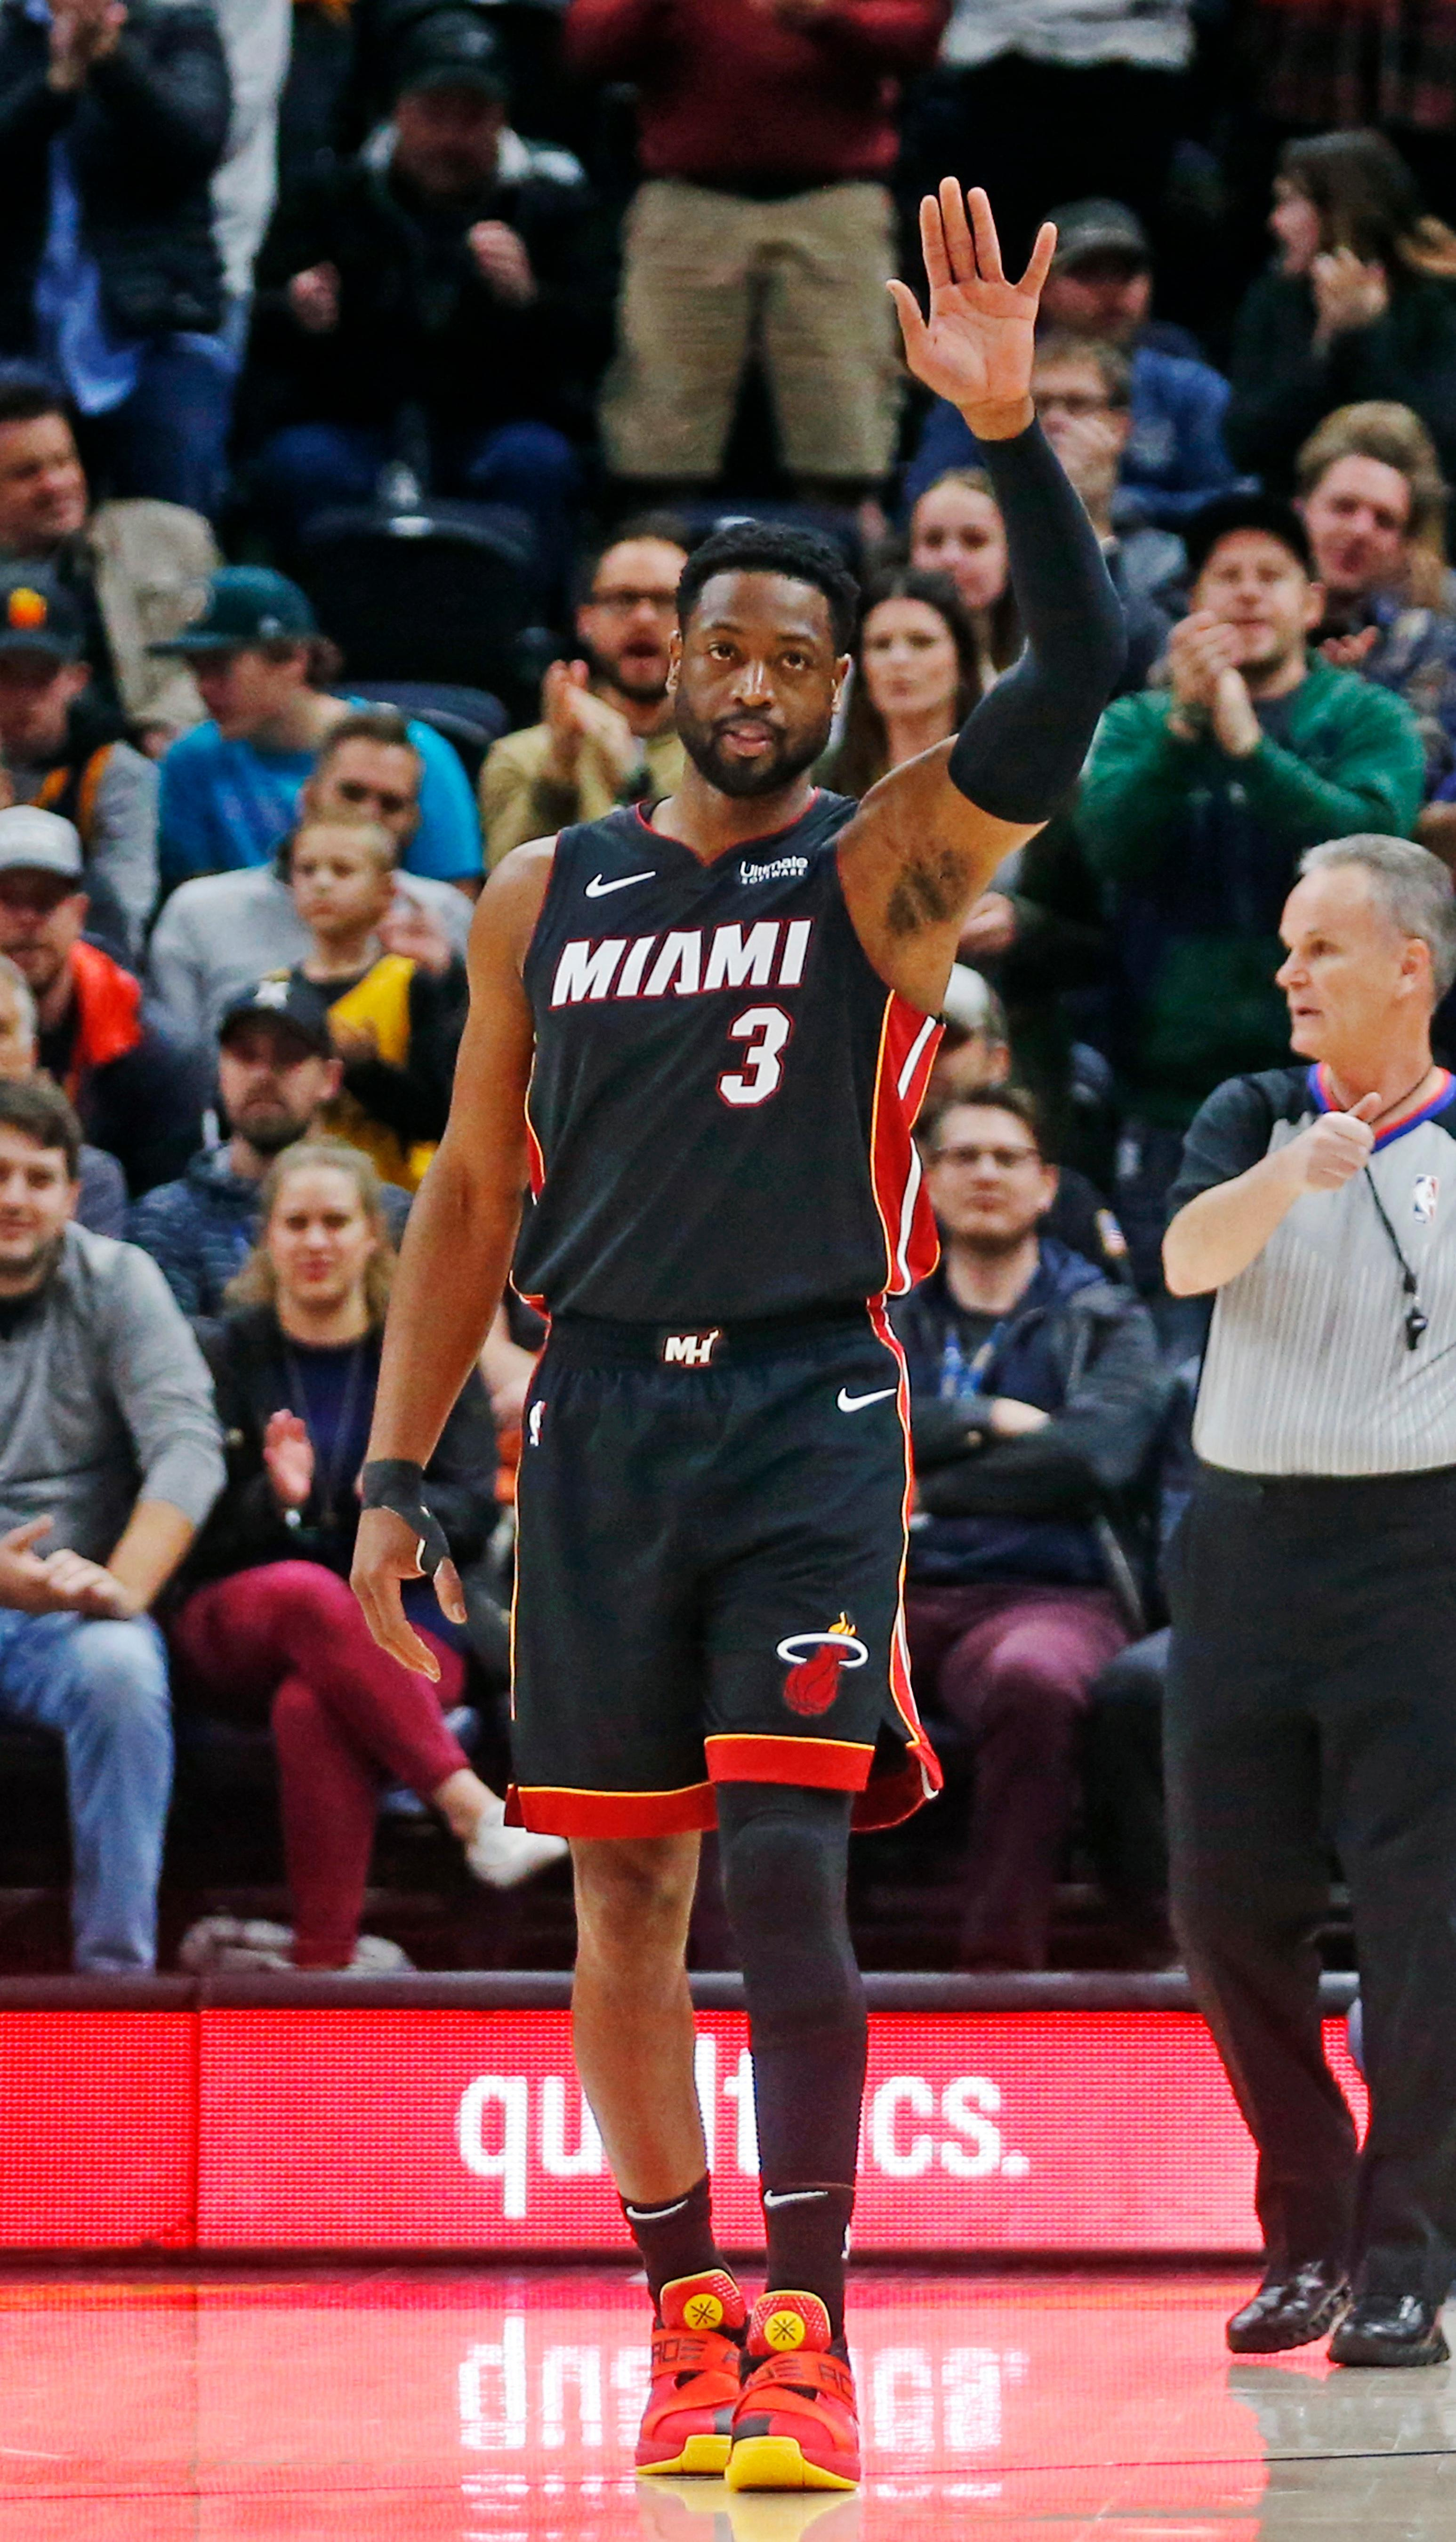 Miami Heat guard Dwyane Wade (3) waves to the fans as he is introduced in the first half of an NBA basketball game against the Utah Jazz, Wednesday Dec. 12, 2018, in Salt Lake City. (AP Photo/Rick Bowmer)